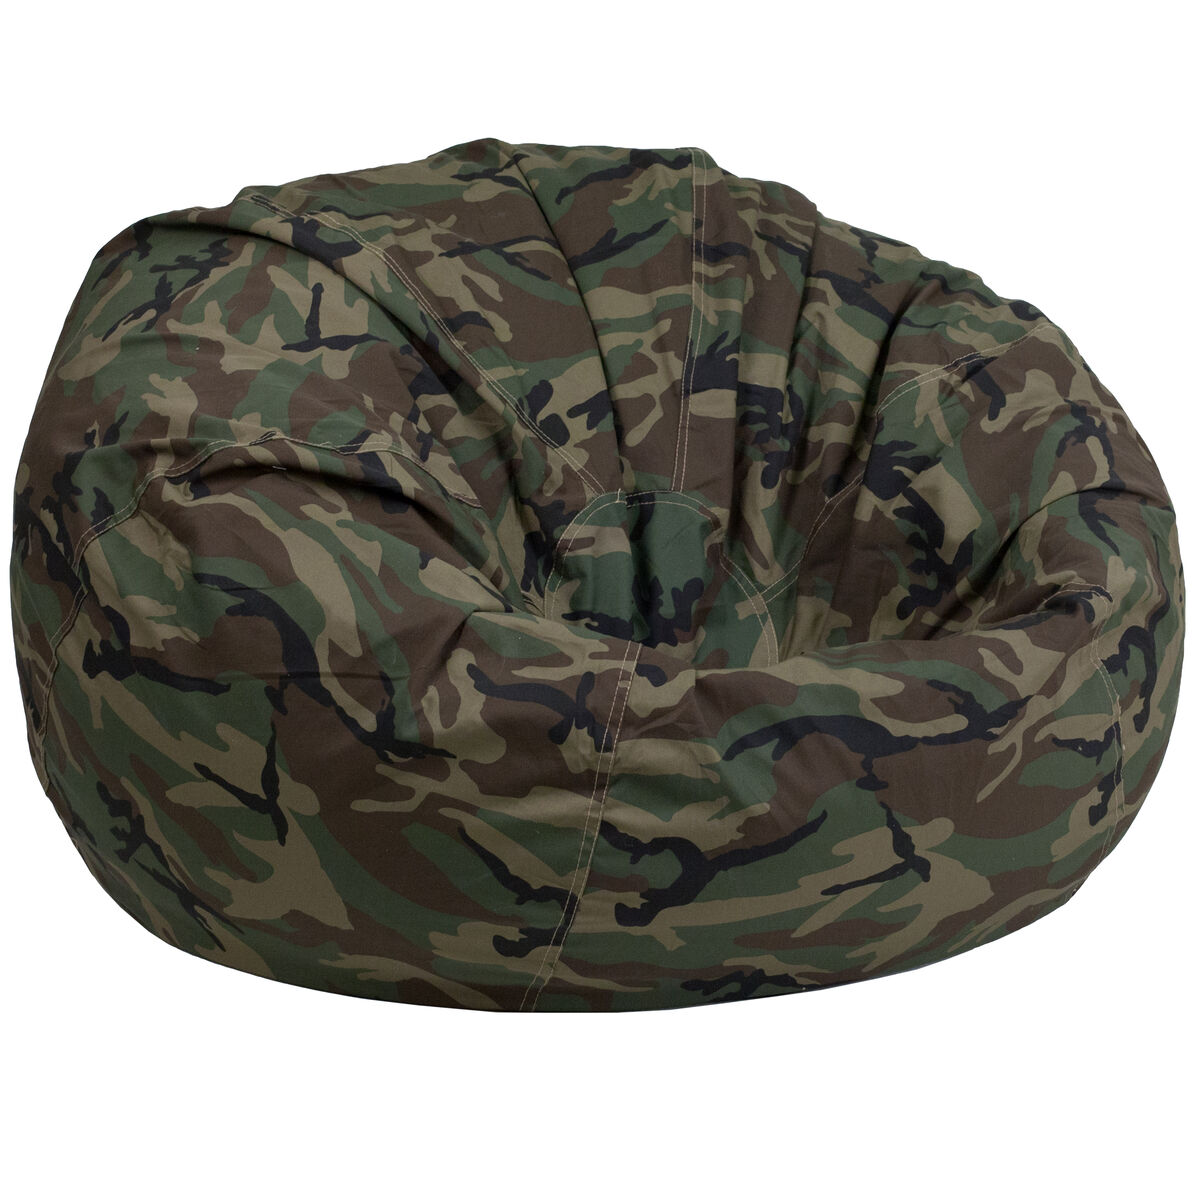 Our Oversized Camouflage Kids Bean Bag Chair Is On Now